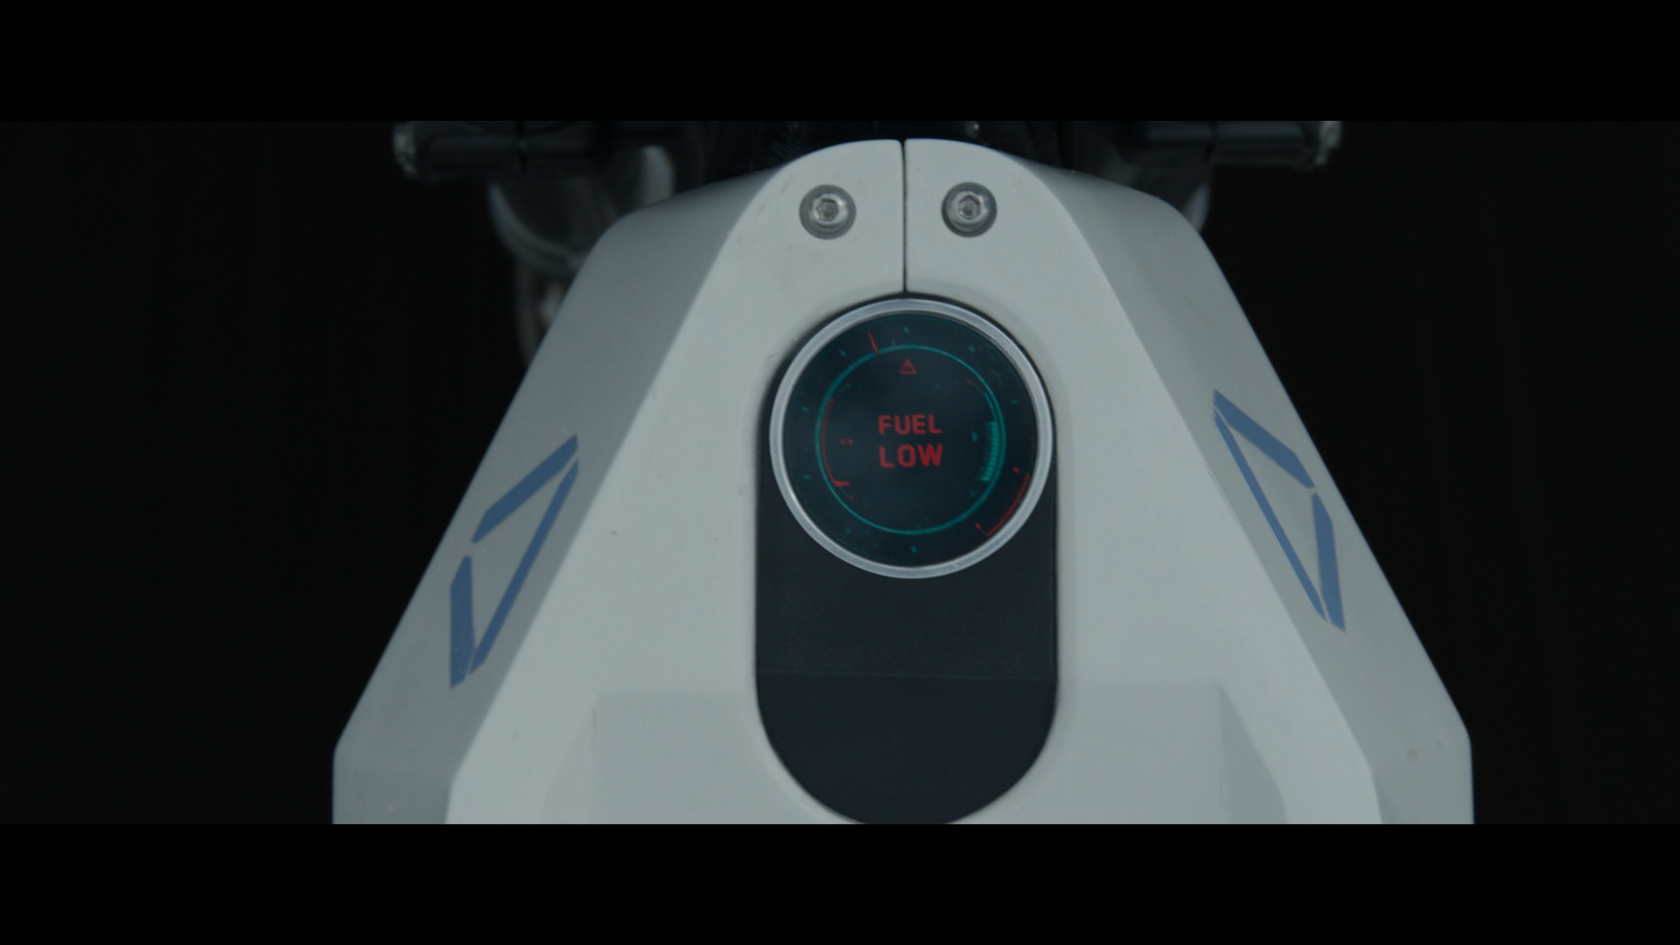 View of Jack from the movie Oblivions motorcycle interface display showing that the fuel is low